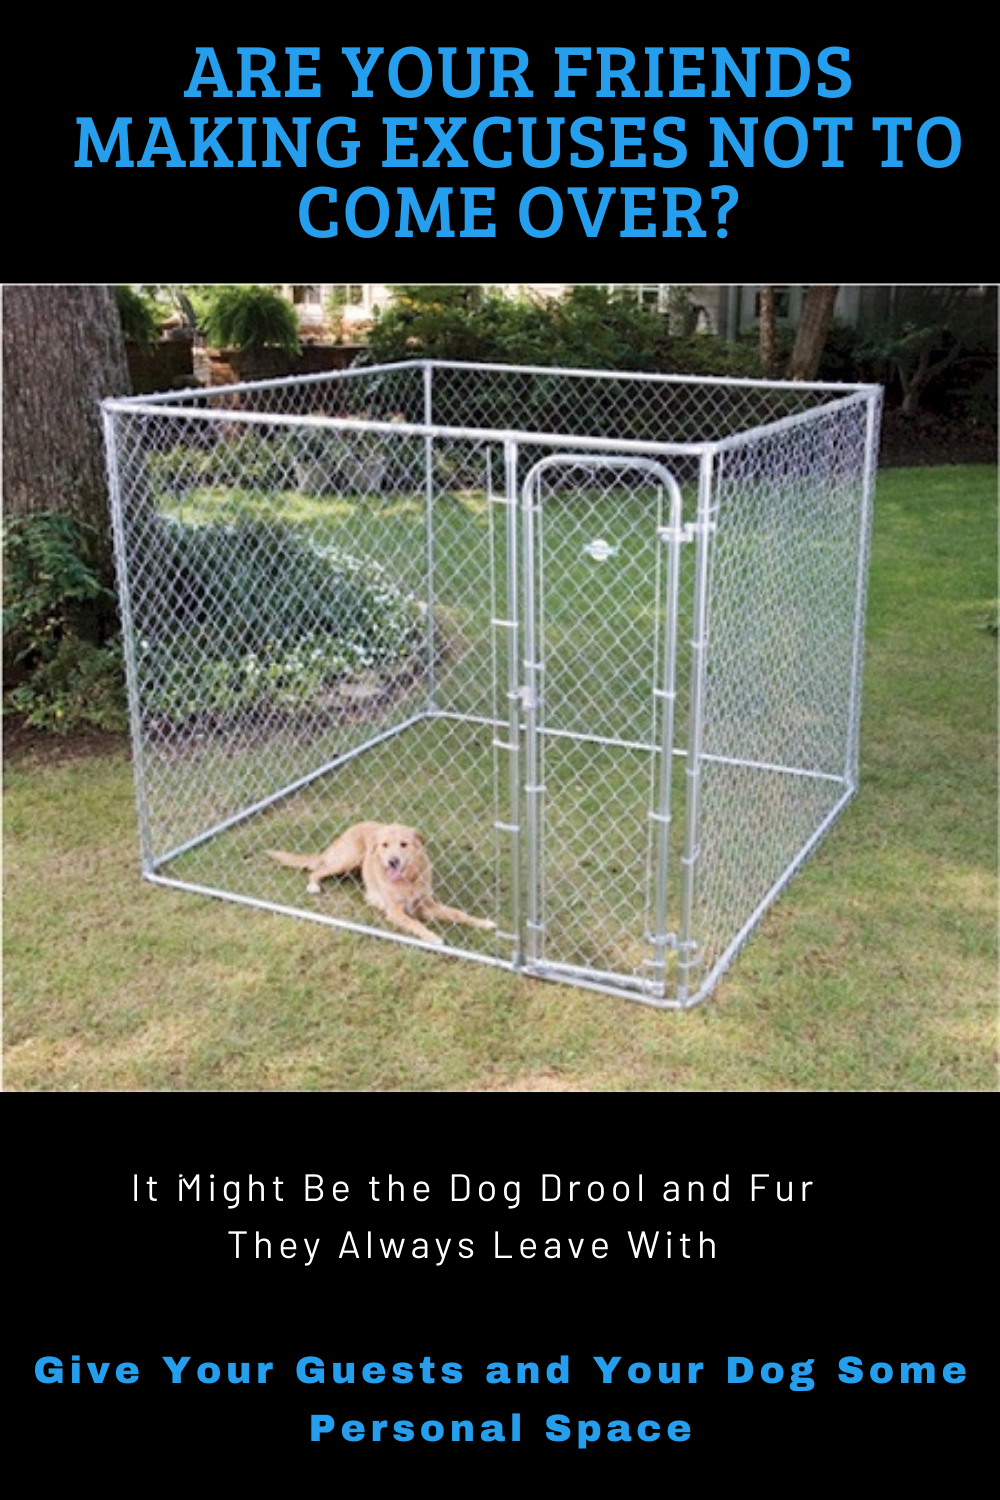 Free Shipping Right Now On Dog Kennels! Distance Your Guests From Your Loveable but Overly Friendly Pup!